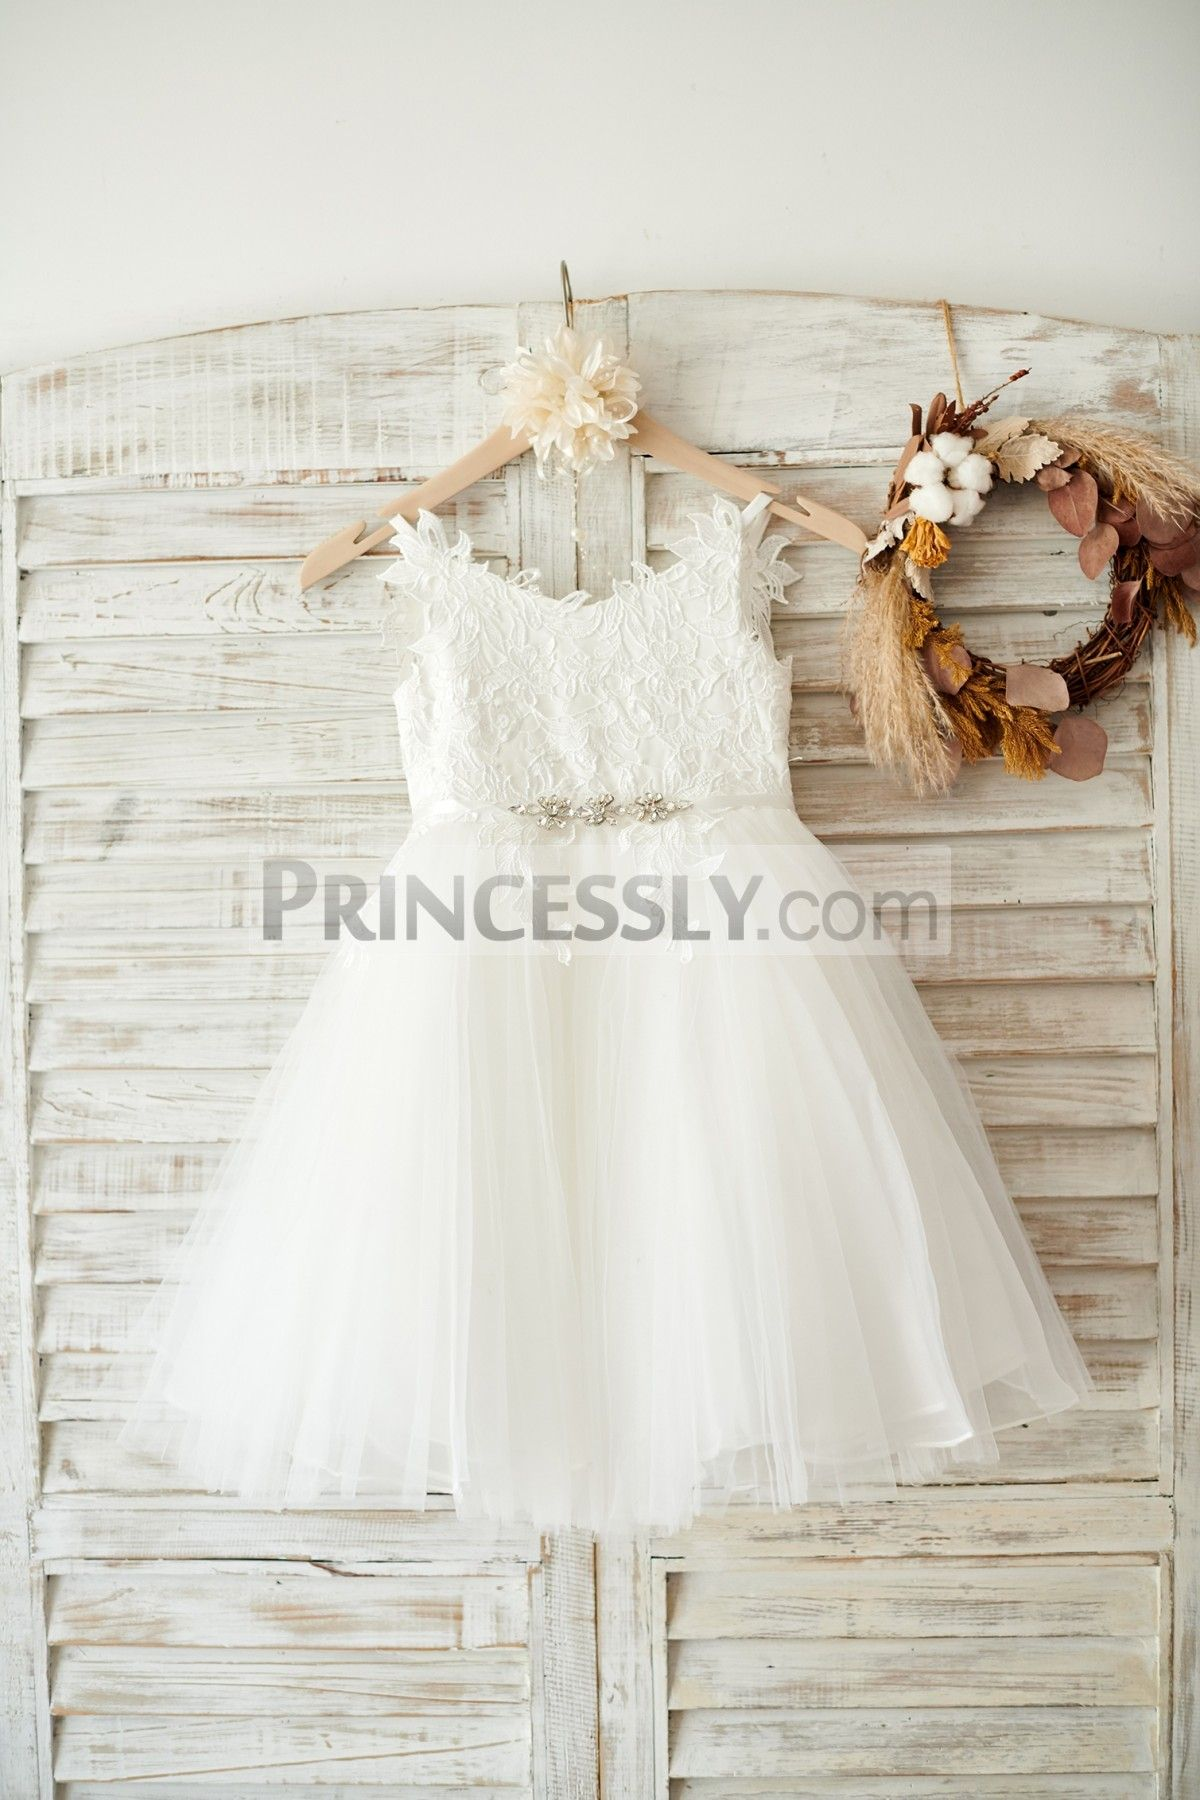 Pearl belt for wedding dress  Ivory lace Tulle Spaghetti straps Wedding Flower Girl Dress with